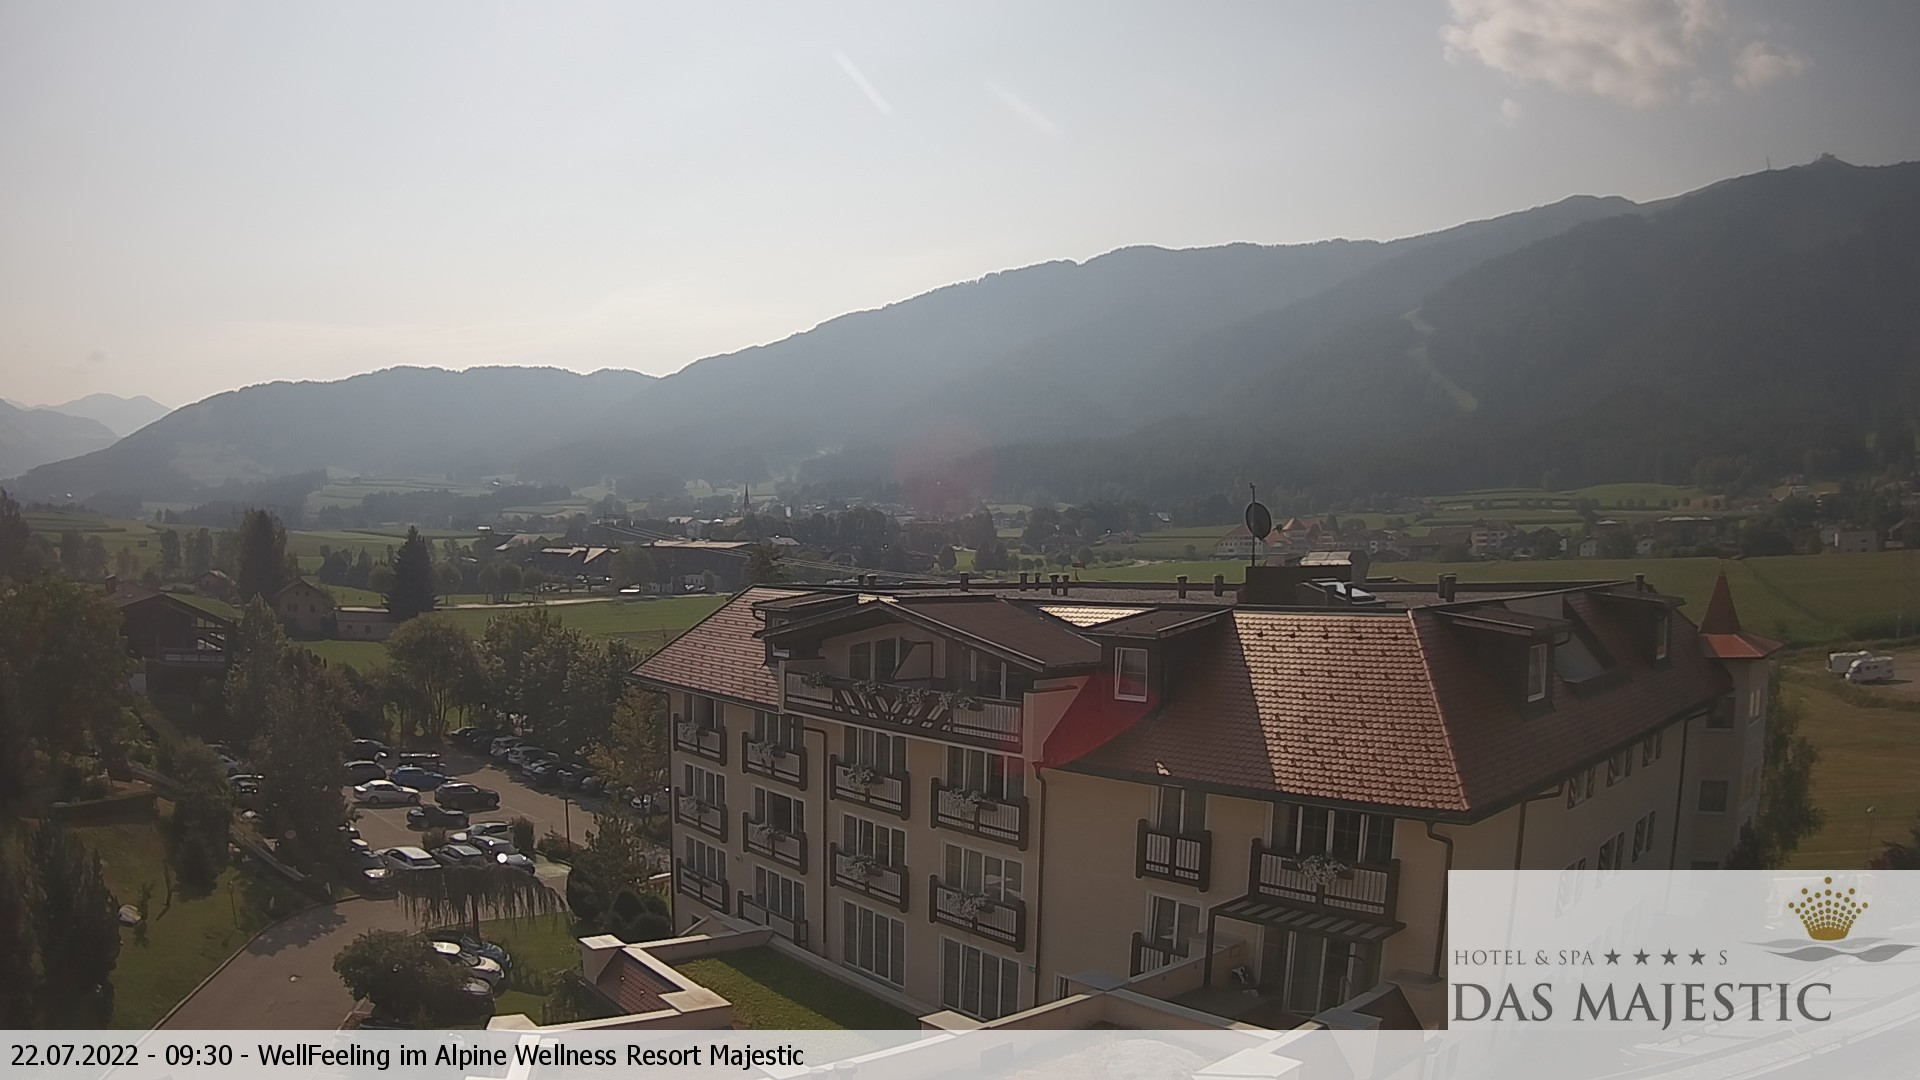 Webcam Webcam Hotel Majestic in Reischach